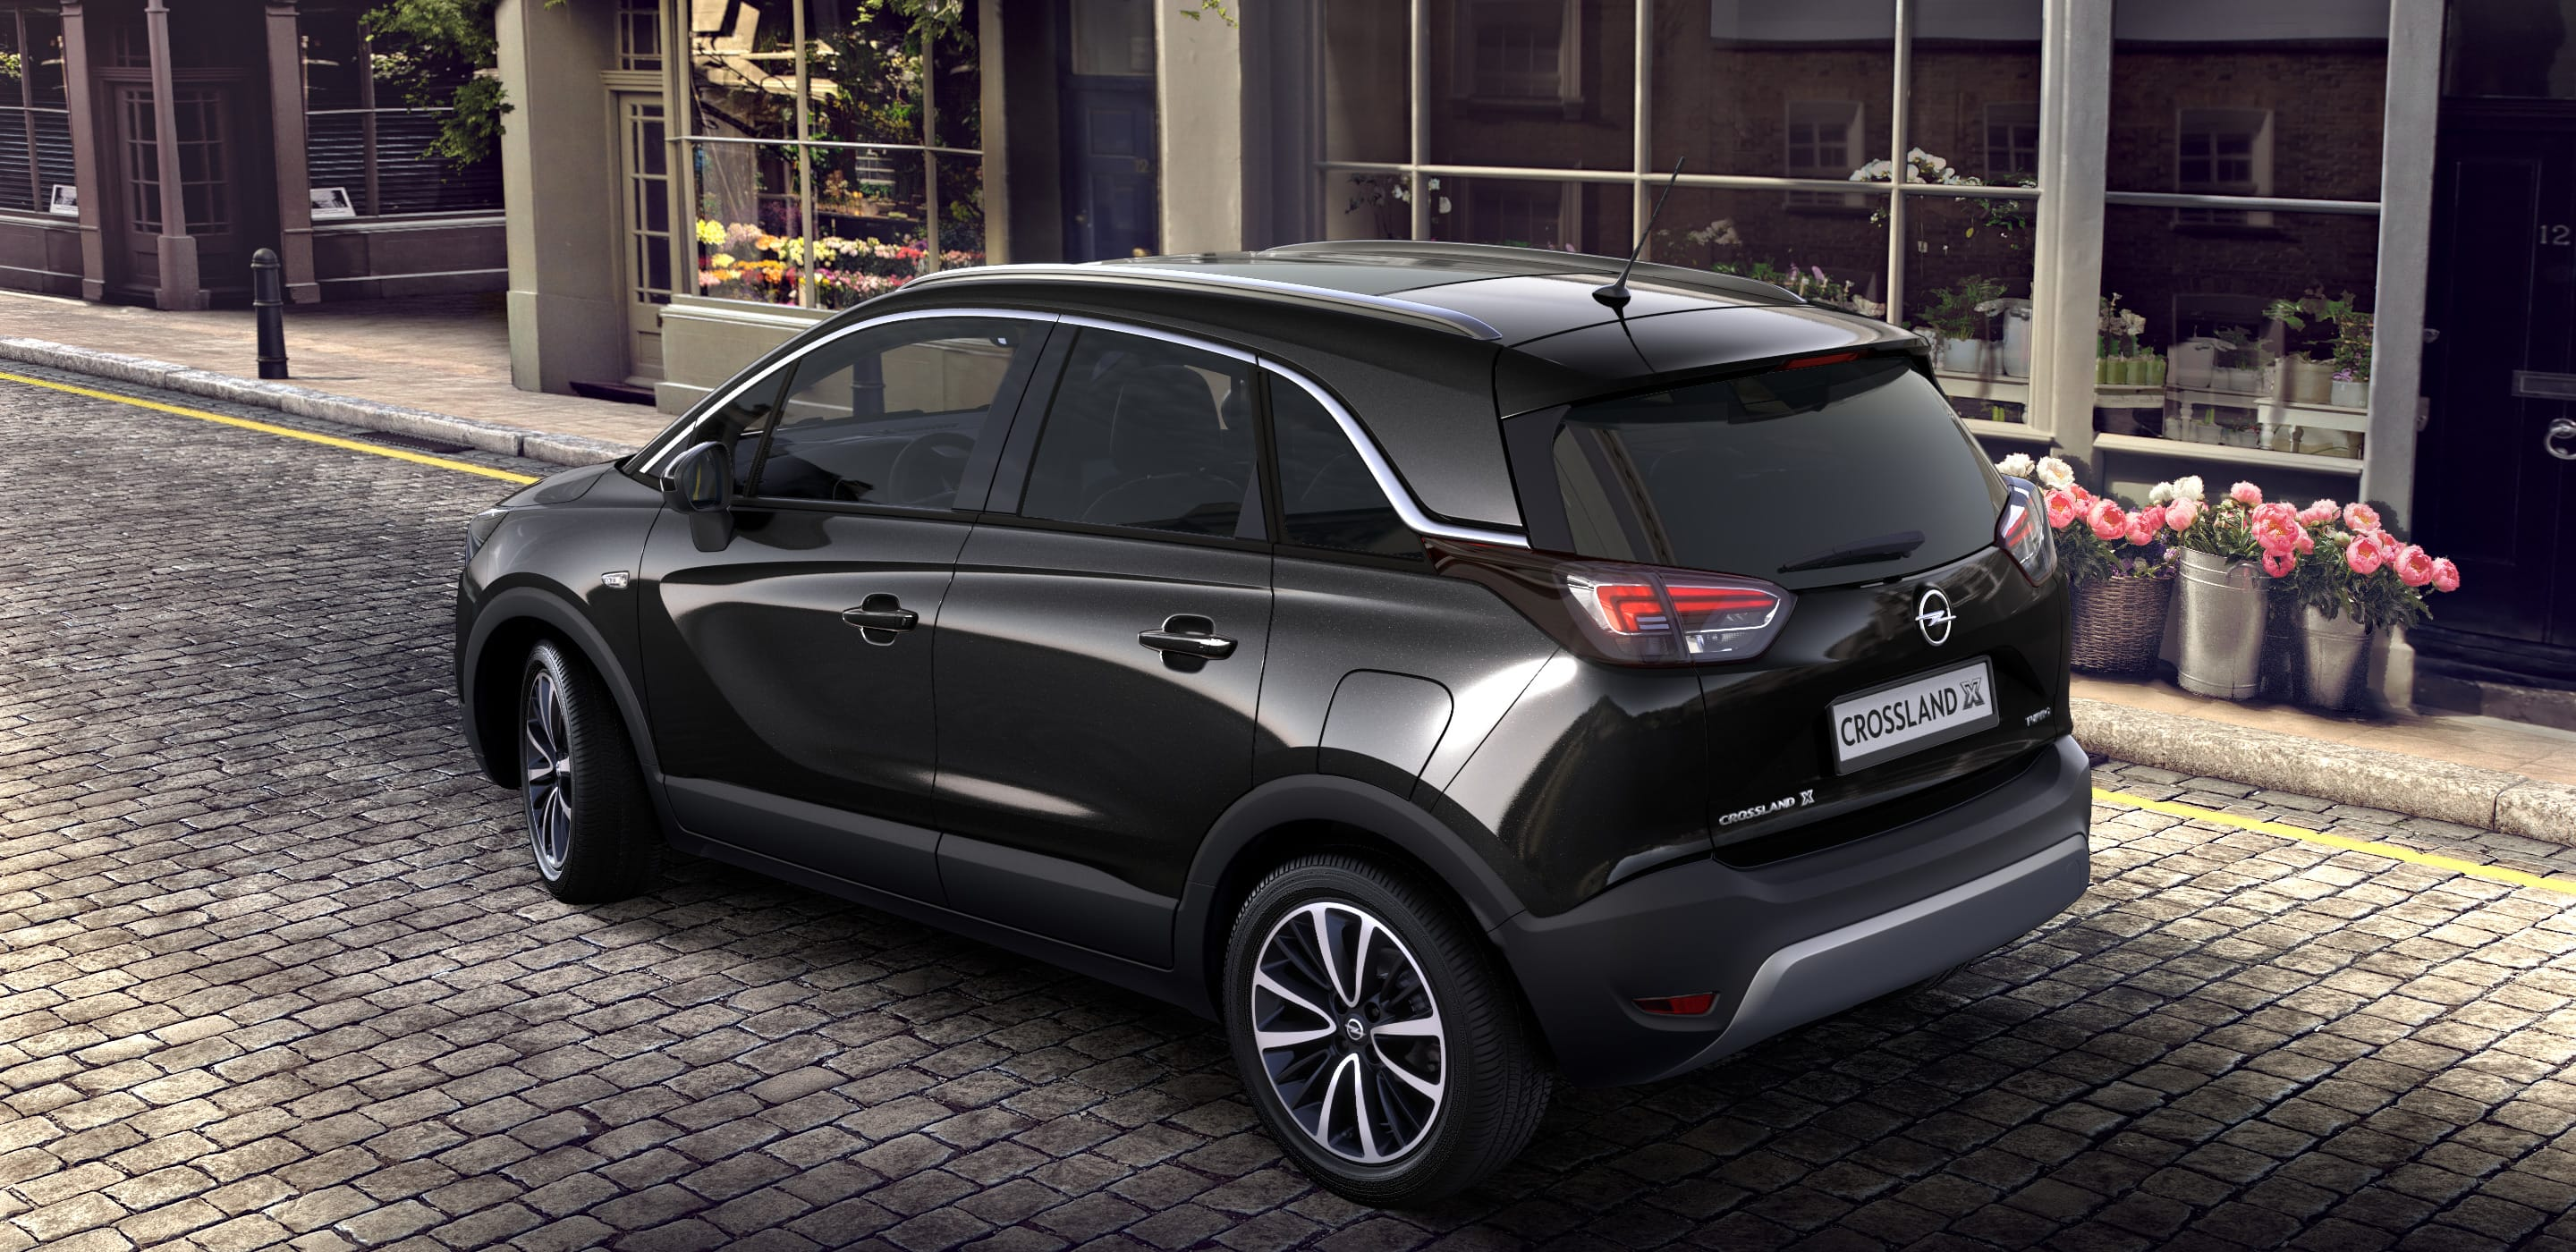 Opel Crossland X Innovation 1.2 Turbo. 1.2 Turbo.